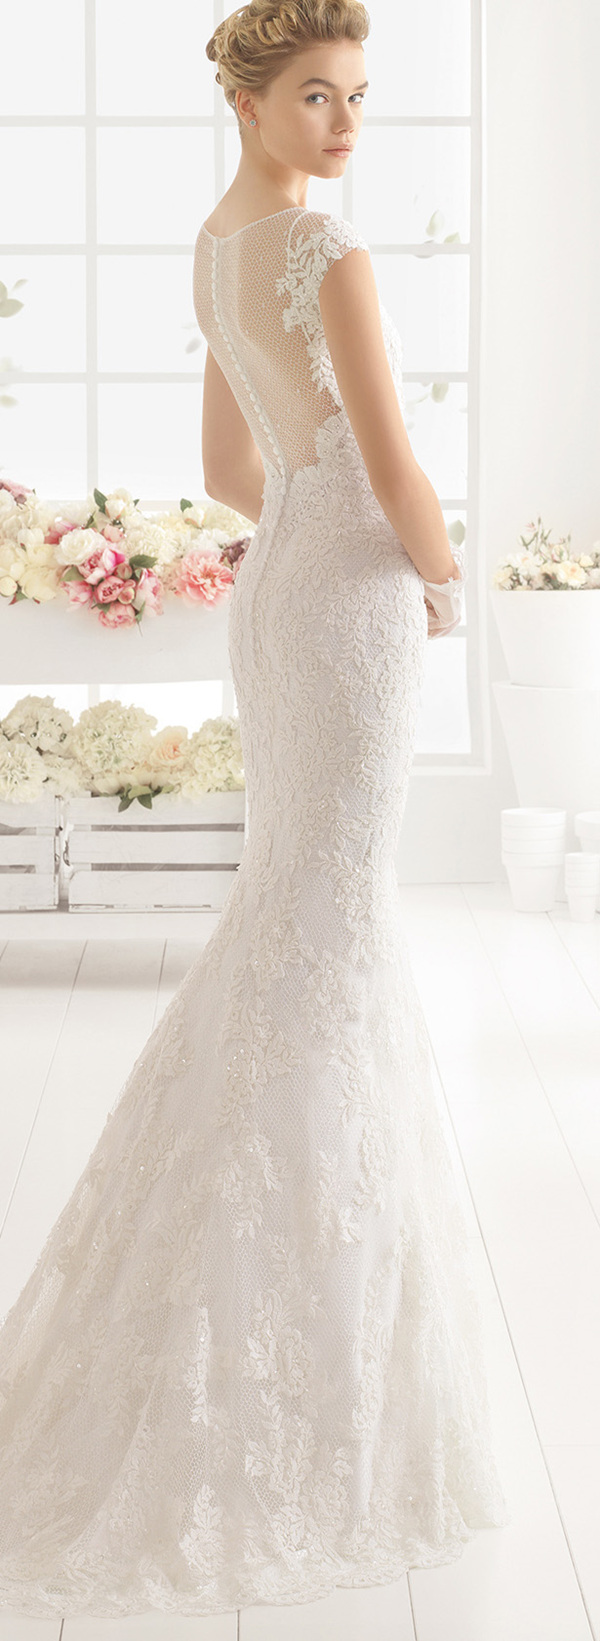 Aire Barcelona mermaid lace wedding dresses 2016 back details